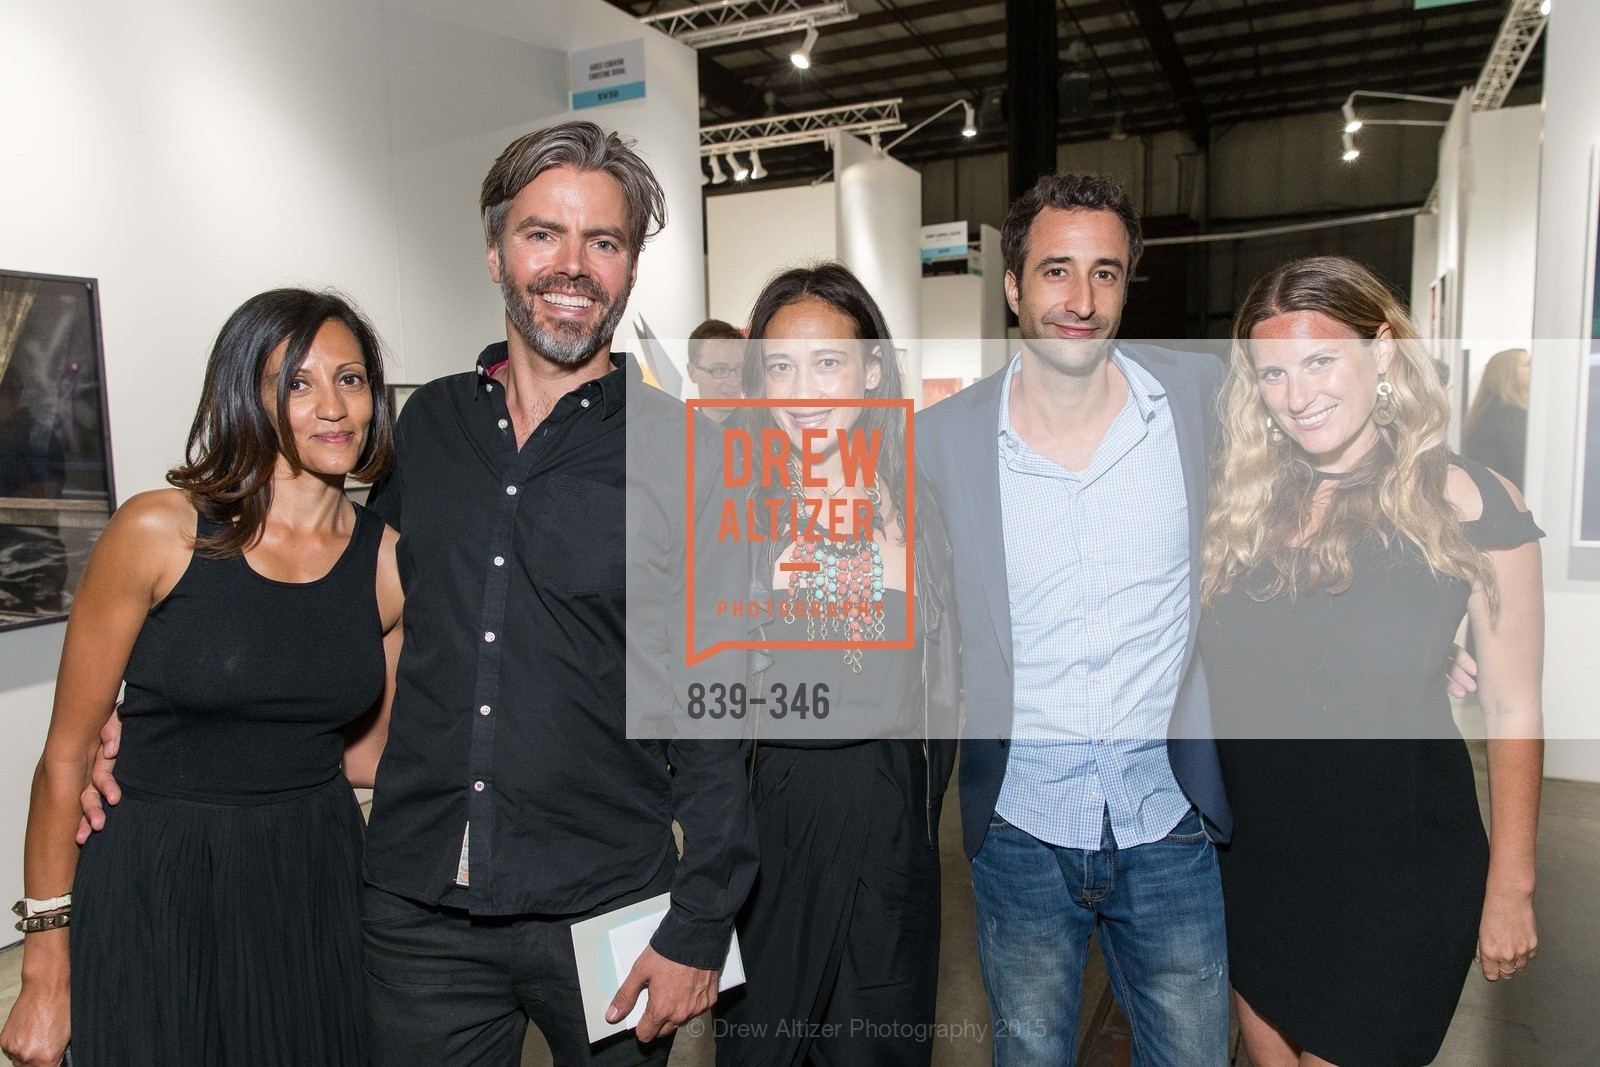 Yael Putterman, Tim Paschke, Marissa Halbrecht, Johnathan Weizman, Lysee Kaye, Art Miami Presents: Art Silicon Valley, San Mateo County Event Center. 1346 Saratoga Dr, October 8th, 2015,Drew Altizer, Drew Altizer Photography, full-service agency, private events, San Francisco photographer, photographer california